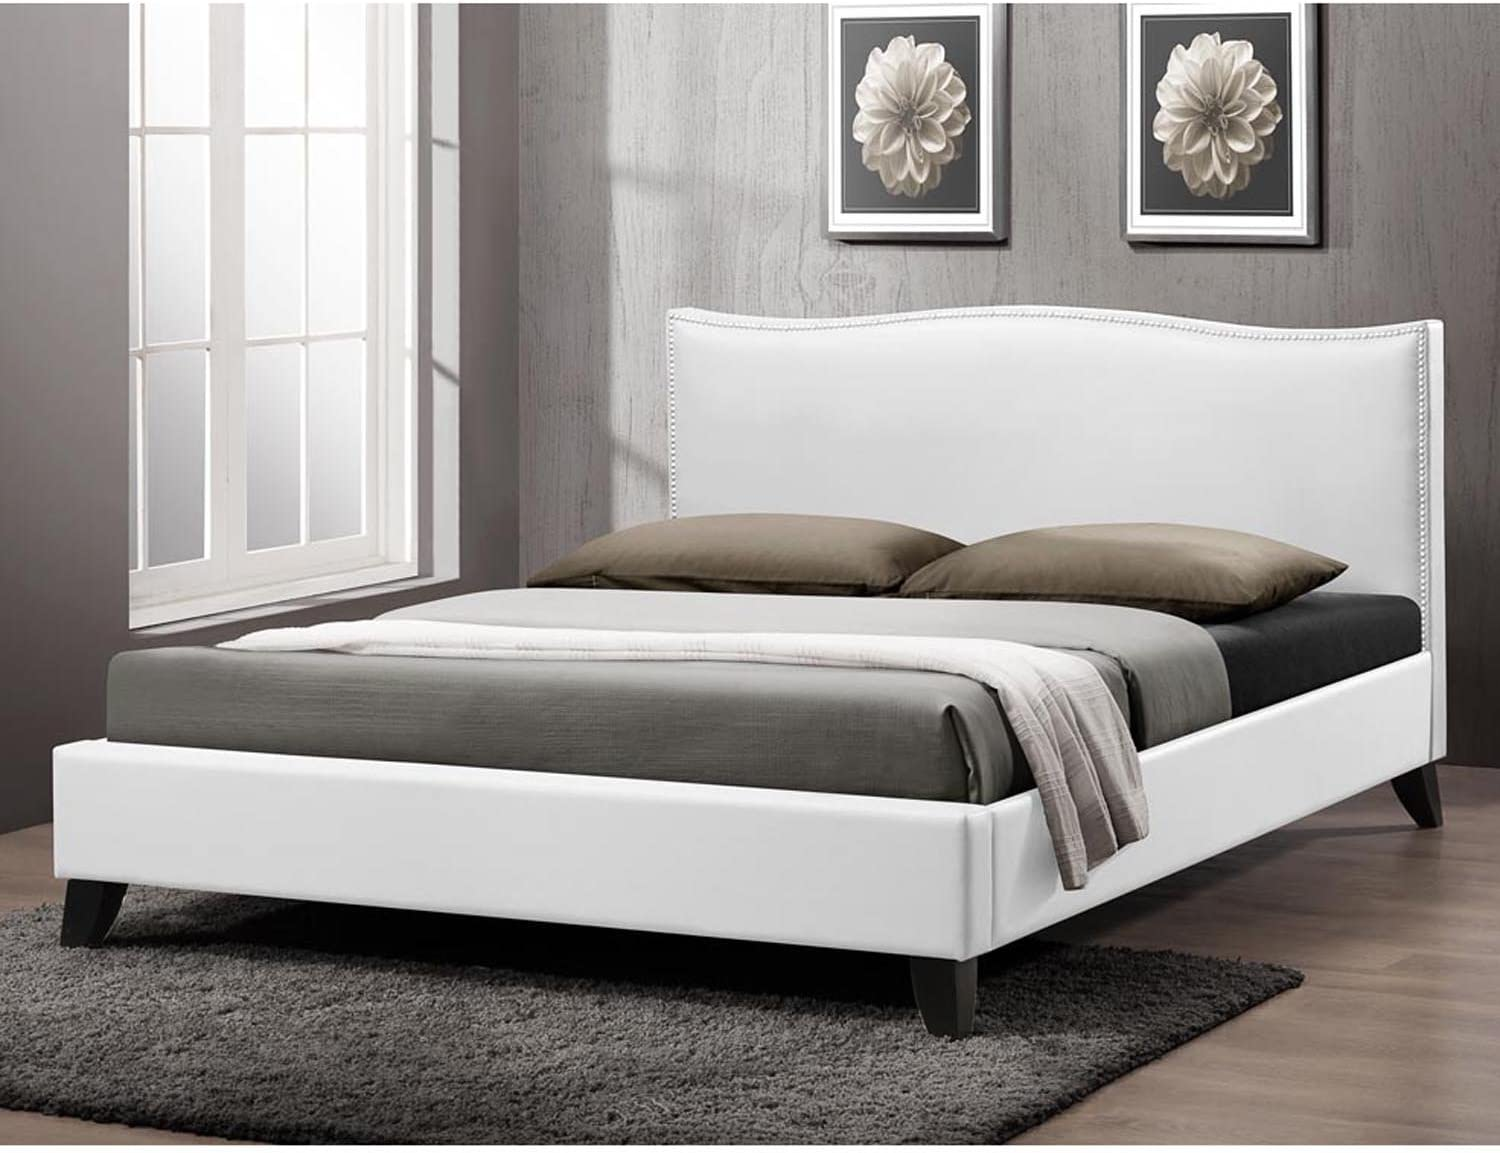 Baxton Max 78% OFF Ranking TOP20 Studio Battersby Modern Bed with Upholstered Headboard Q